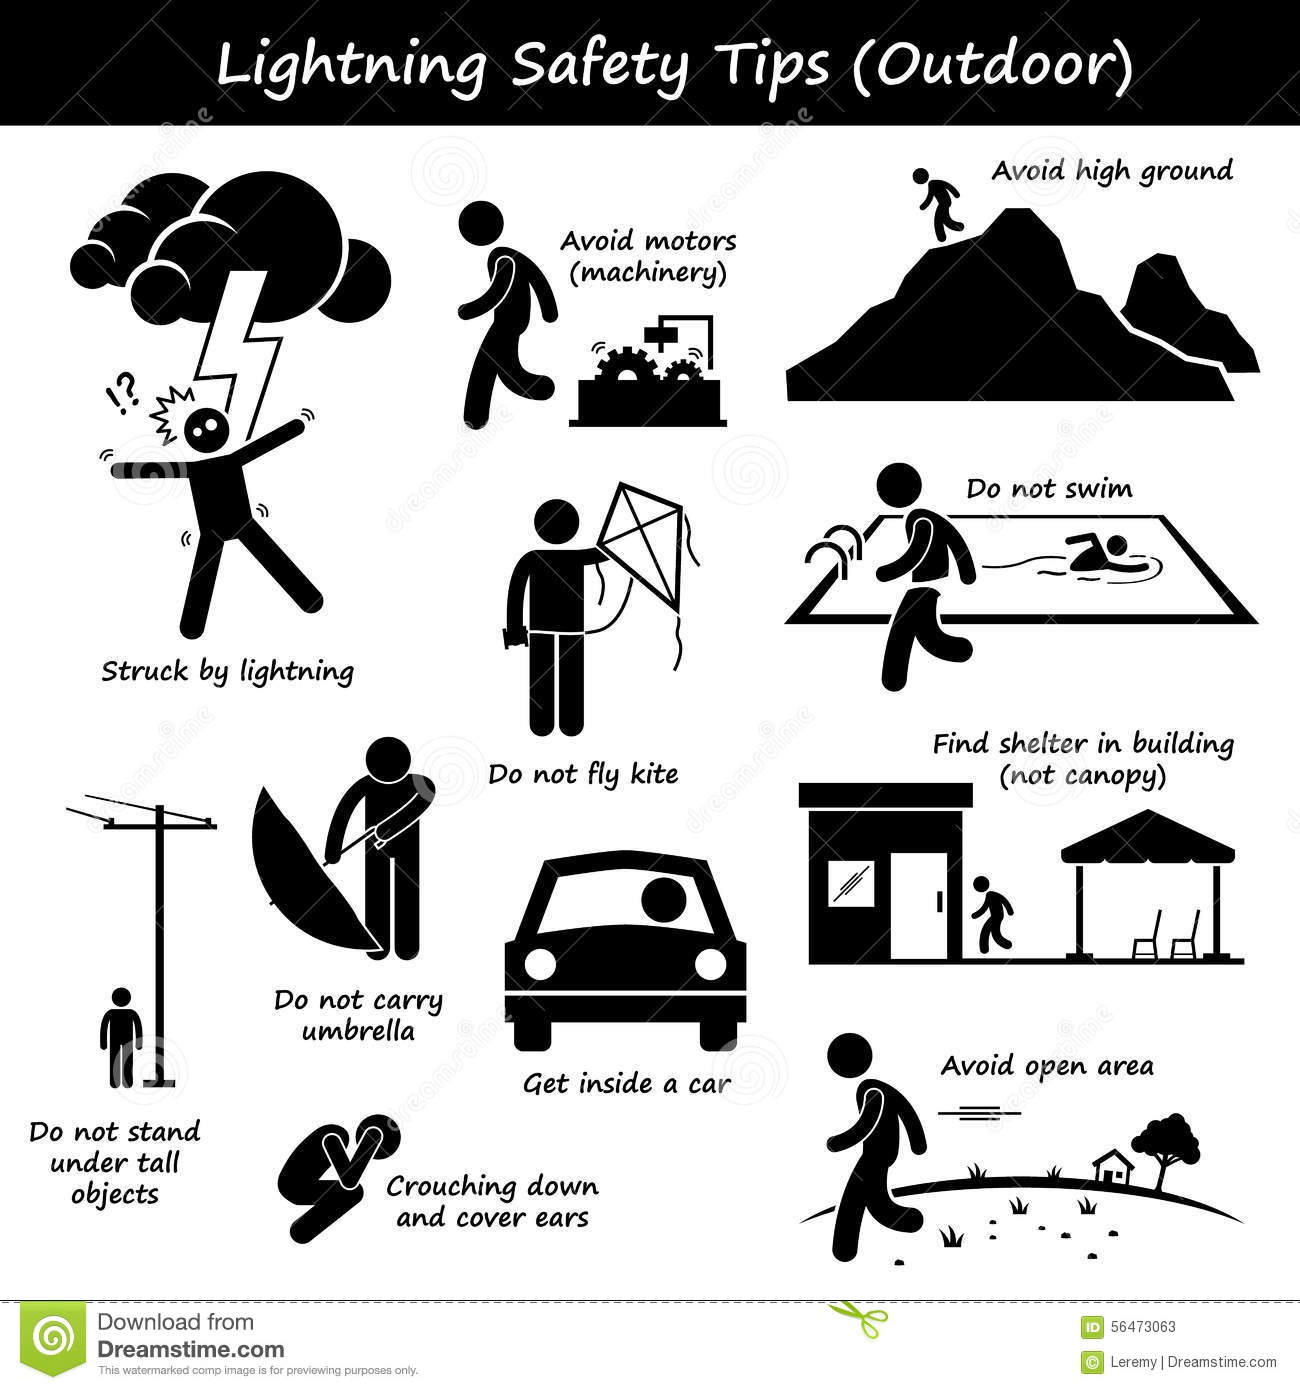 Eyelashes Clipart furthermore Stock Illustration Lightning Thunder Outdoor Safety Tips Clipart Set Human Pictogram Representing Indoor There Stay Away Image56473063 together with AnVuaW9yY2FyZGVzaWduZXIqY29tfHdwLWNvbnRlbnR8dXBsb2Fkc3wyMDEzfDA3fDQtZG9vci1jYXItc2lkZS12aWV3LWRyYXdpbmctNSpqcGc anVuaW9yY2FyZGVzaWduZXIqY29tfGNhci1kcmF3aW5nLXR1dG9yaWFsLTQtZG9vci1jYXItc2lkZS12aWV3fA furthermore Happy Old Woman With Glasses And A Hat 1184756 together with Stock Images Cartoon Old Chair Black White Line Retro Style Vector Available Image37032554. on cartoon car illustration